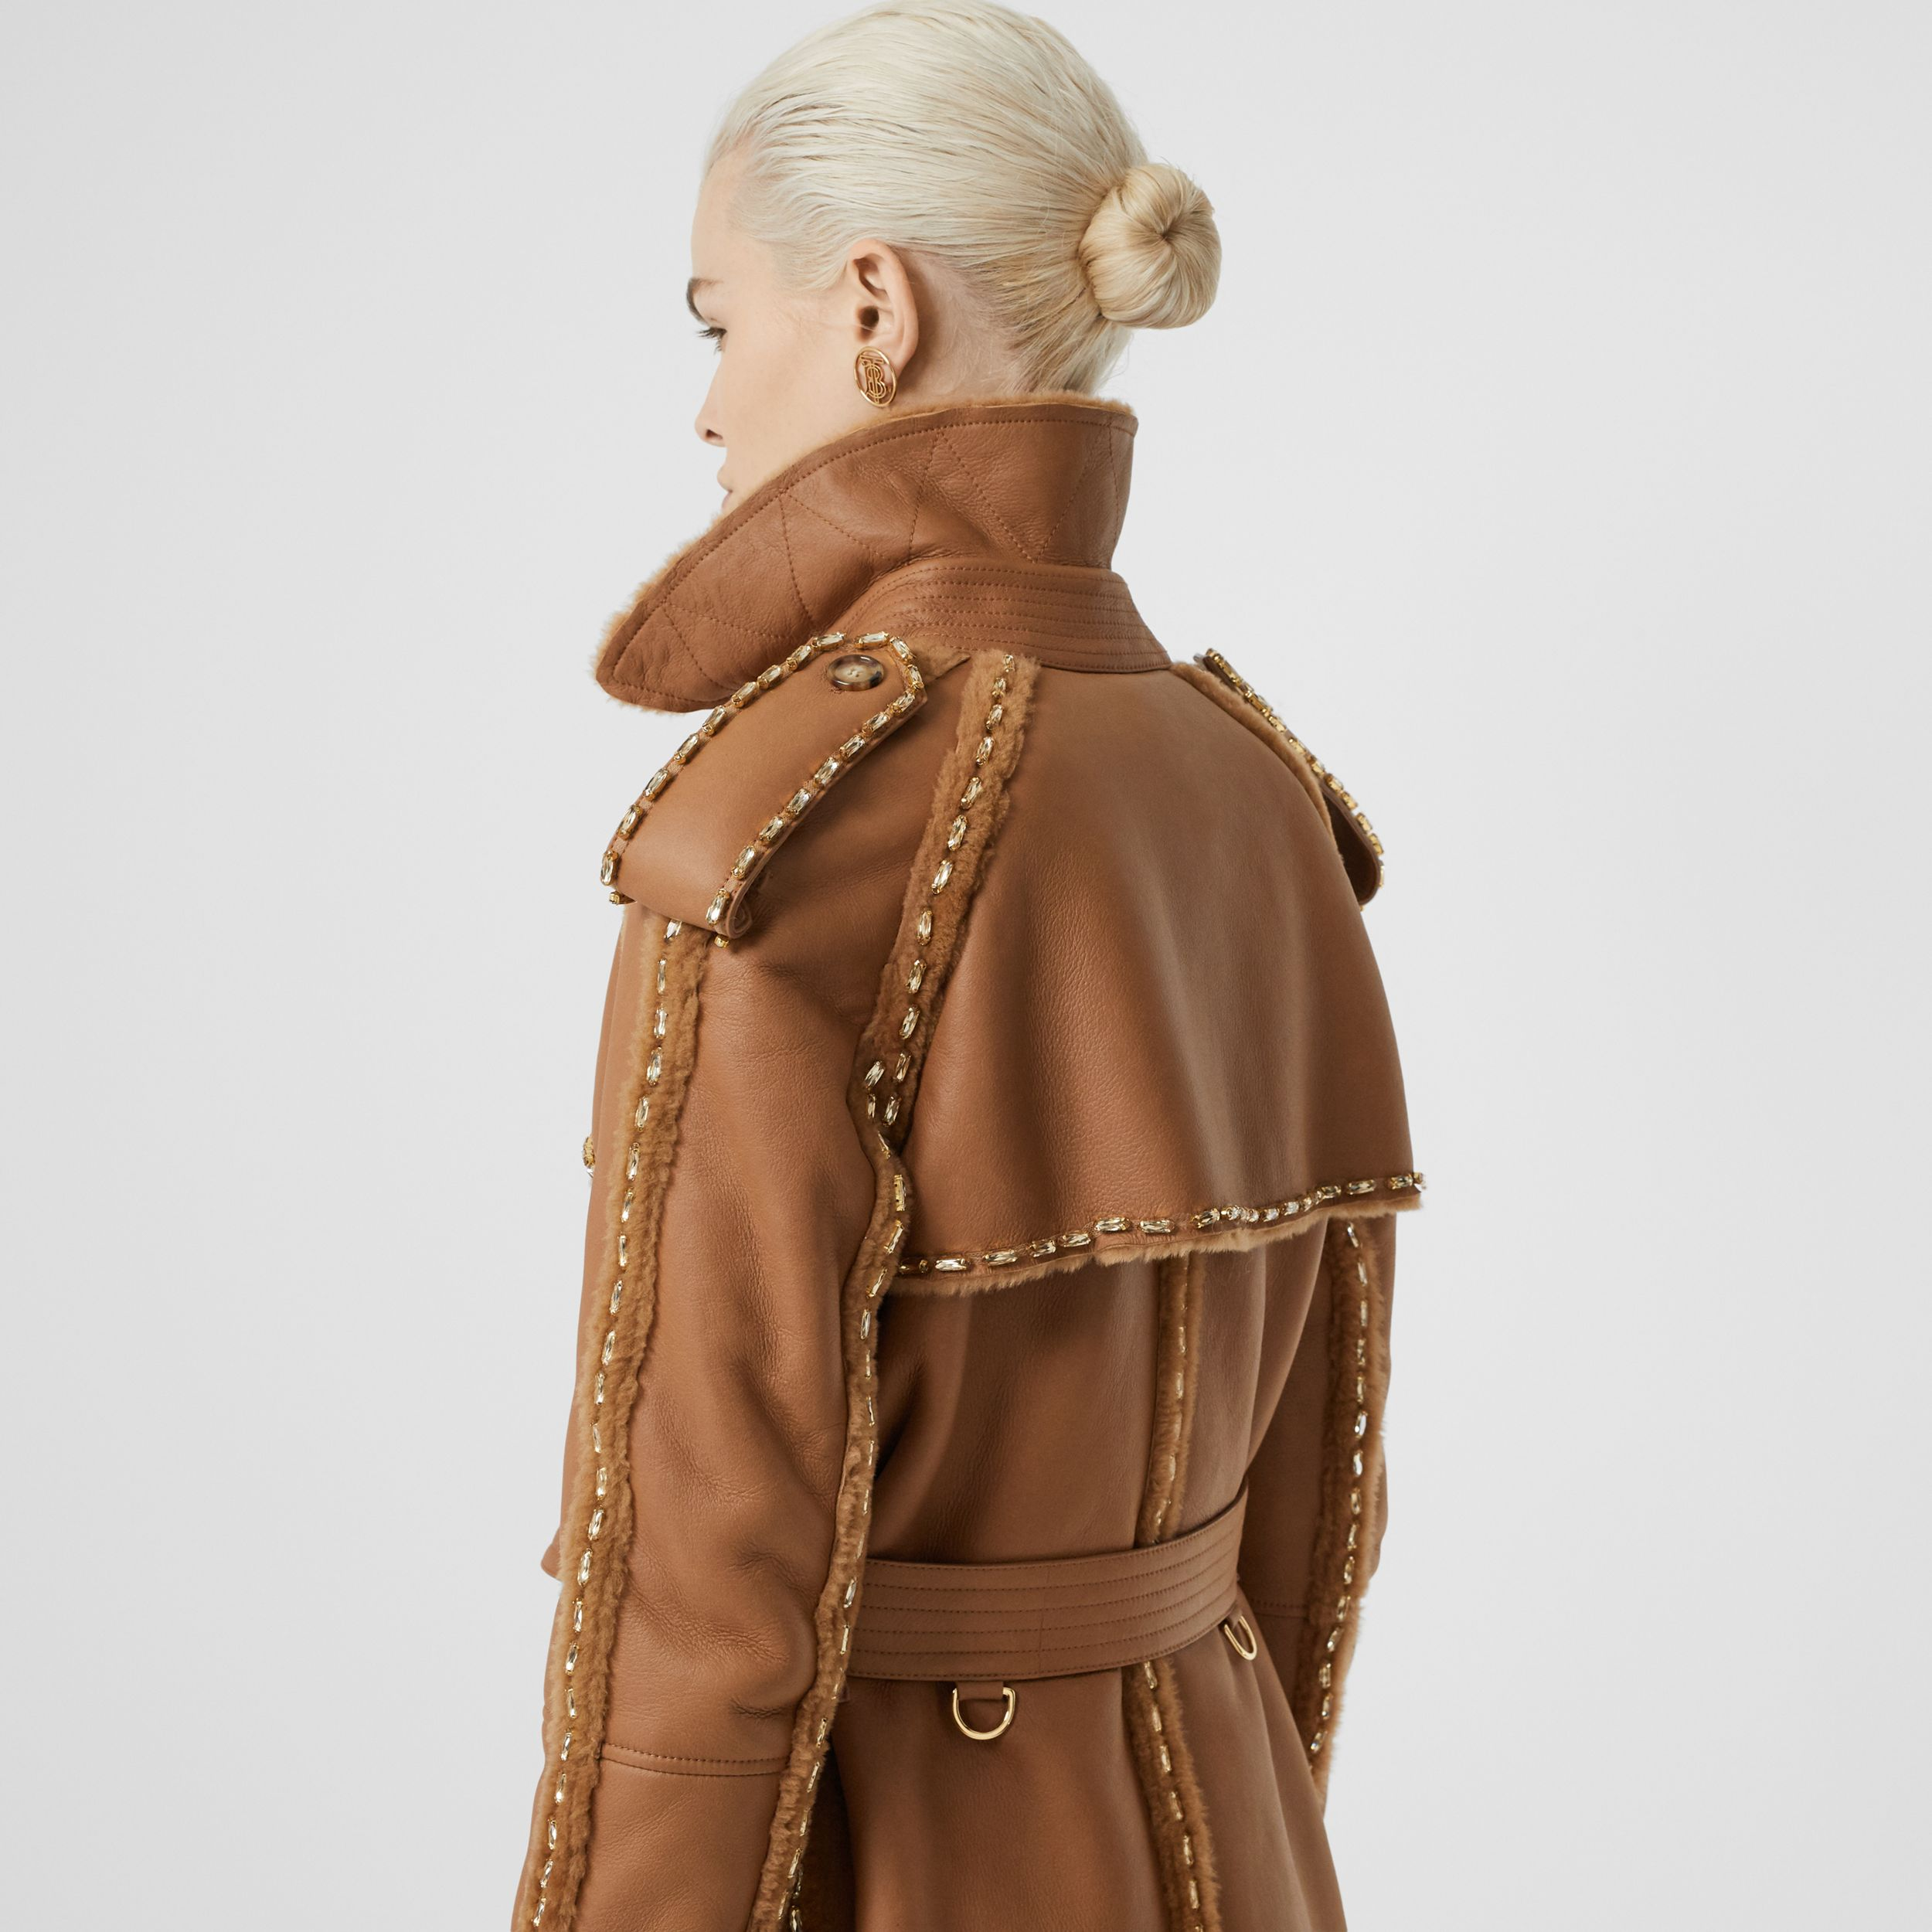 Embellished Shearling Trench Coat in Warm Camel - Women | Burberry Australia - 2